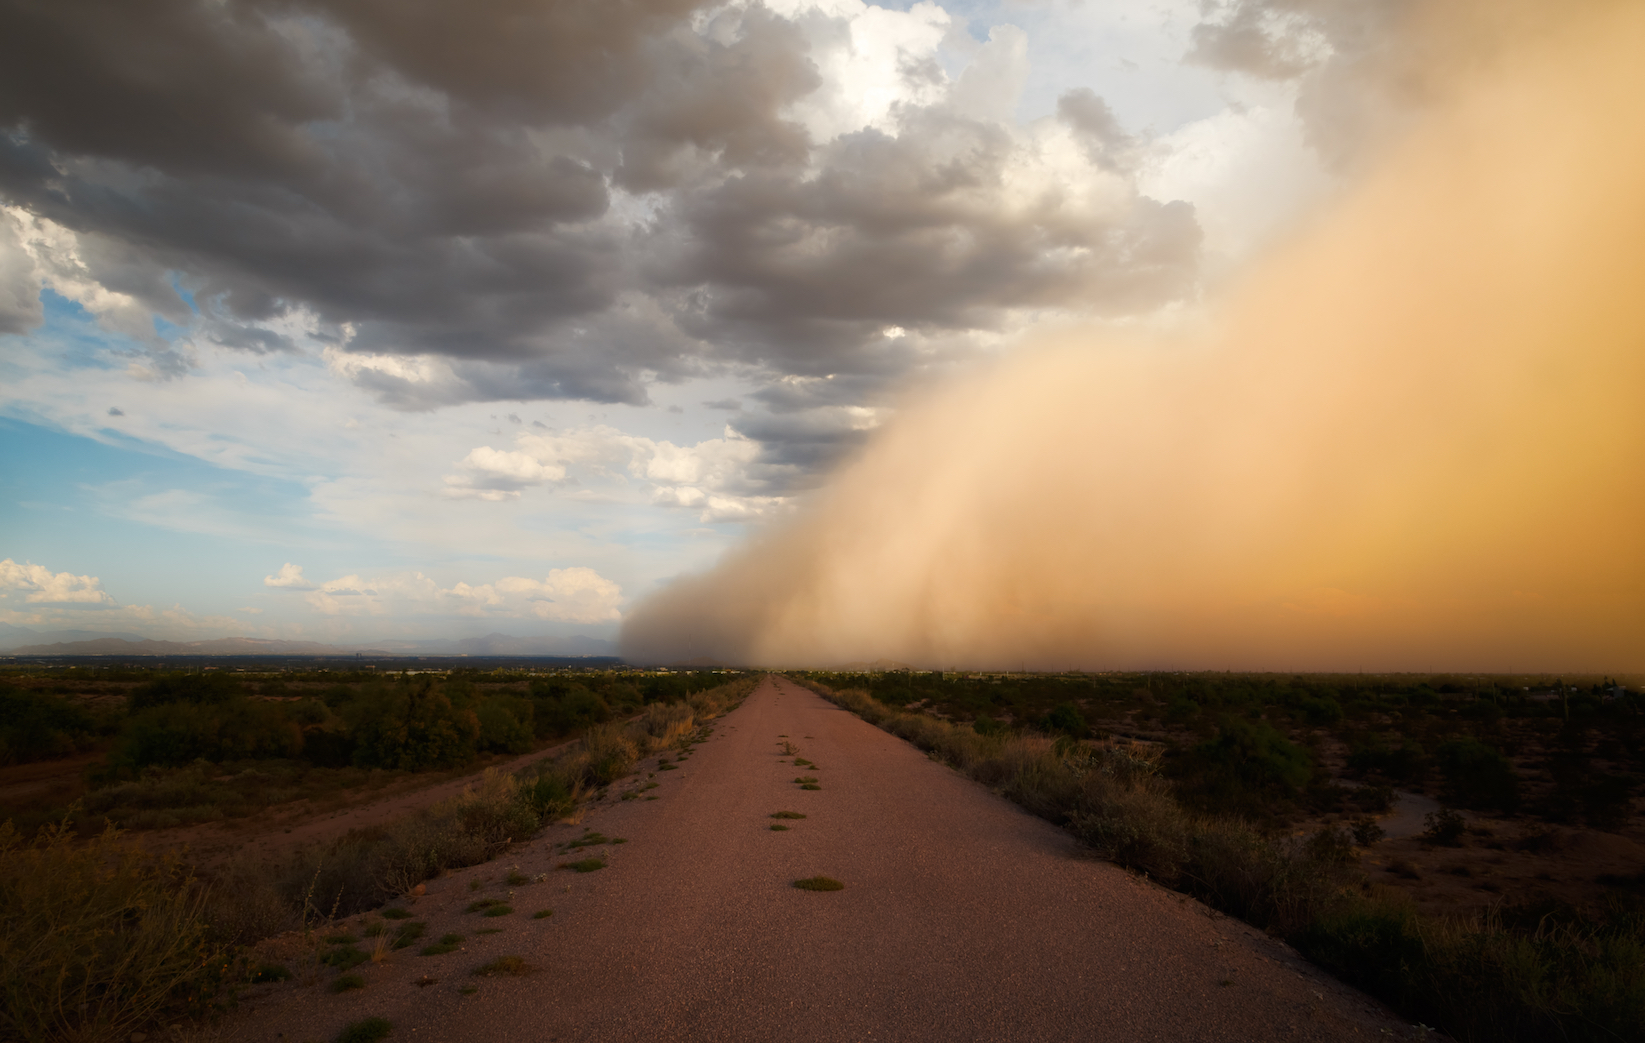 Experts are describing the dangerous health impacts that could be caused by rising airborne dust levels in the southwestern United States.